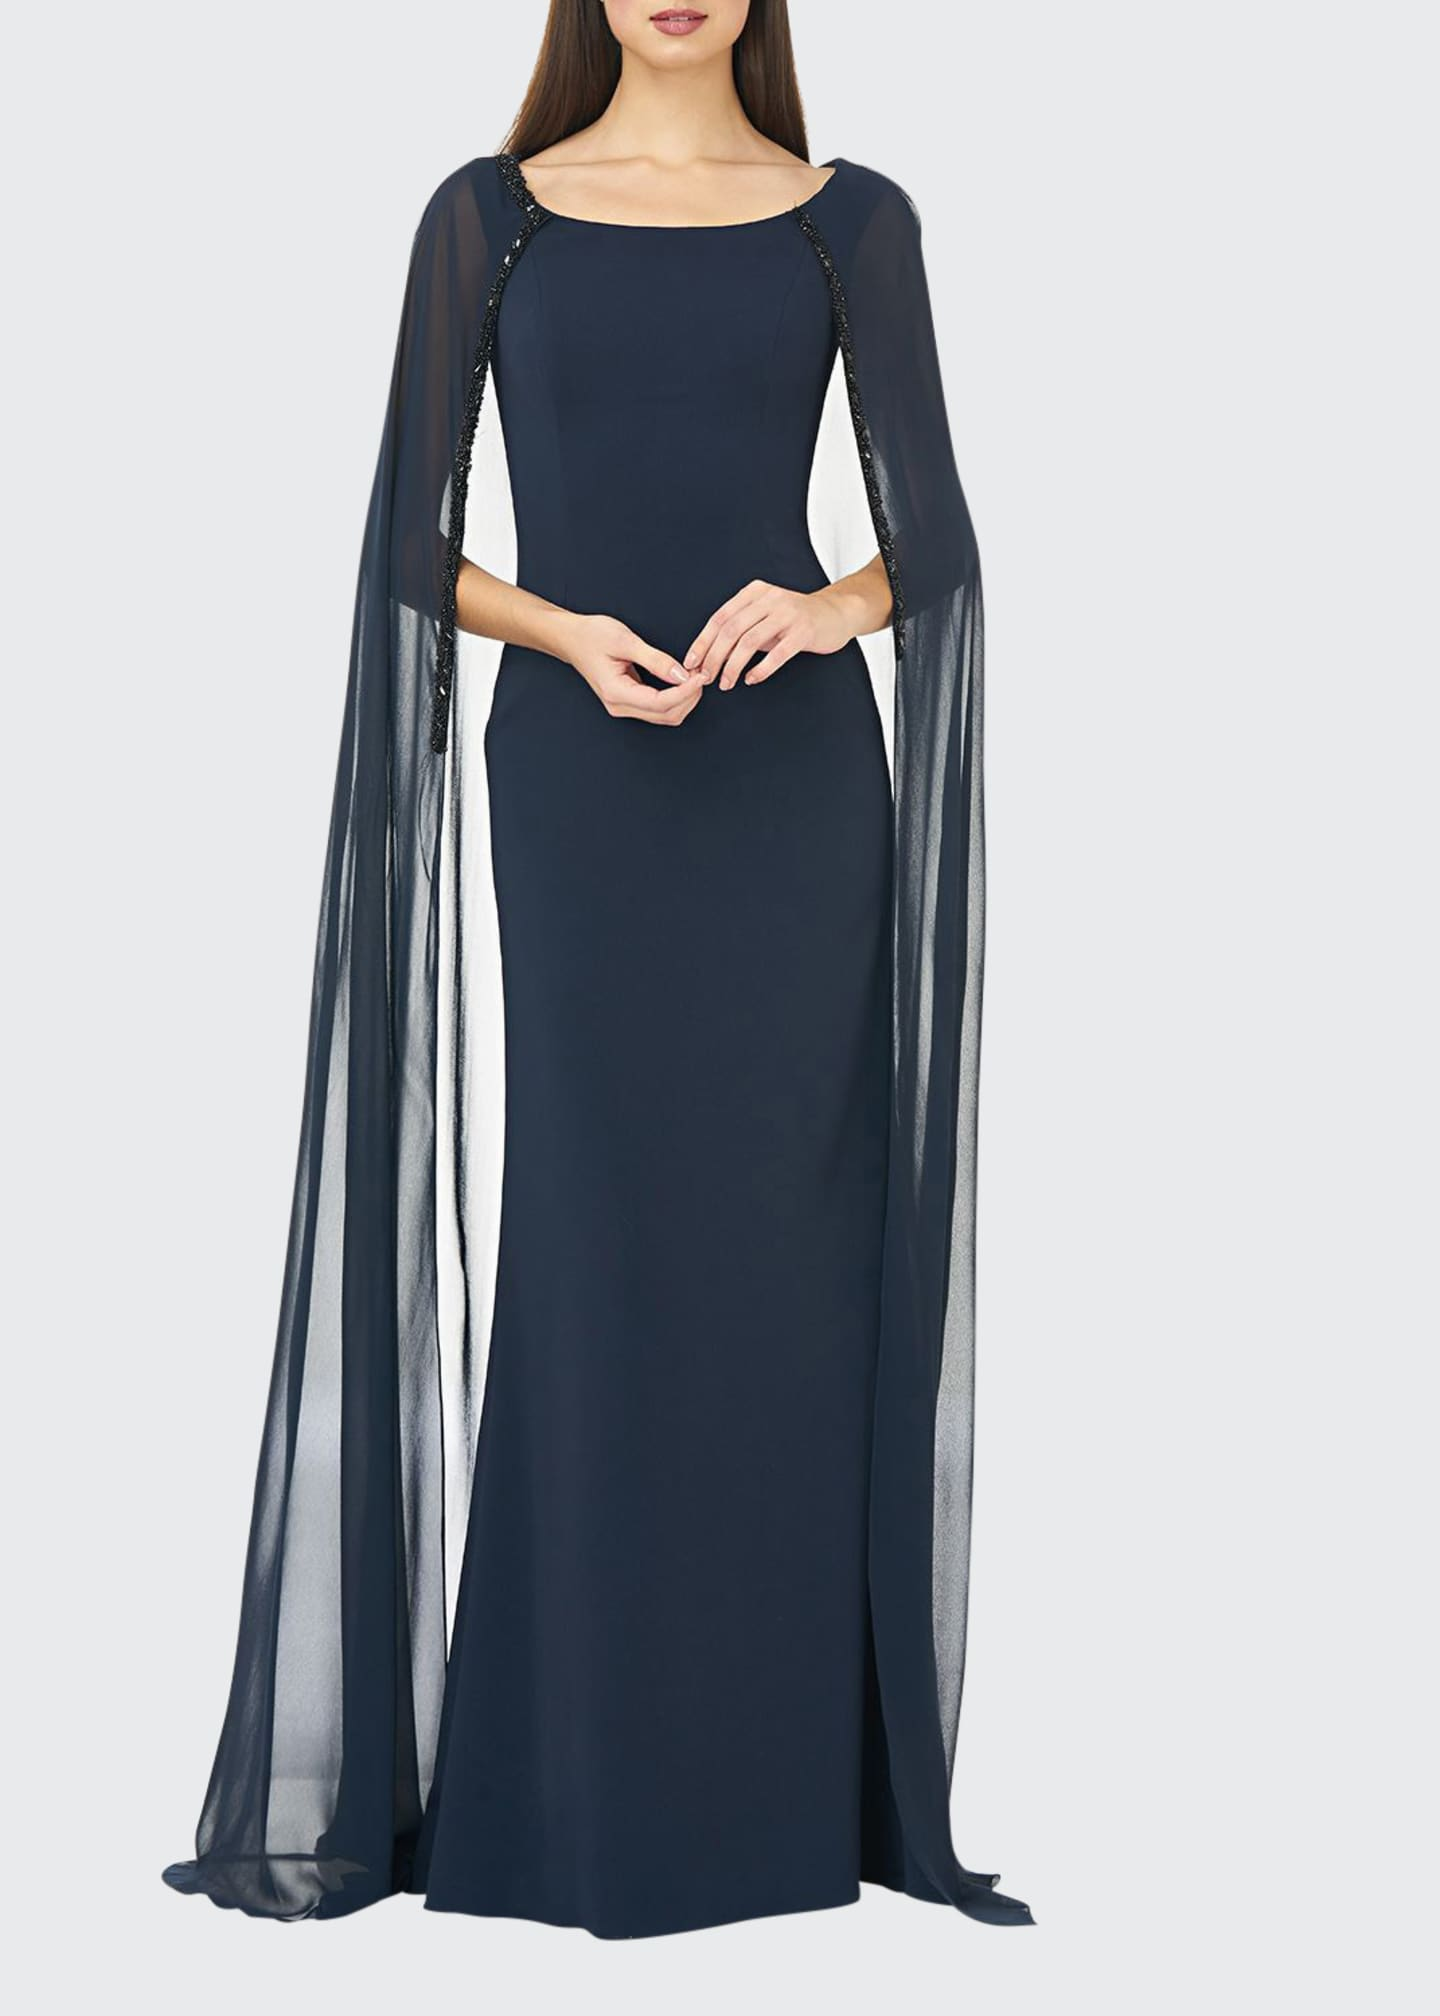 Carmen Marc Valvo Infusion Boat-Neck Crepe Column Gown